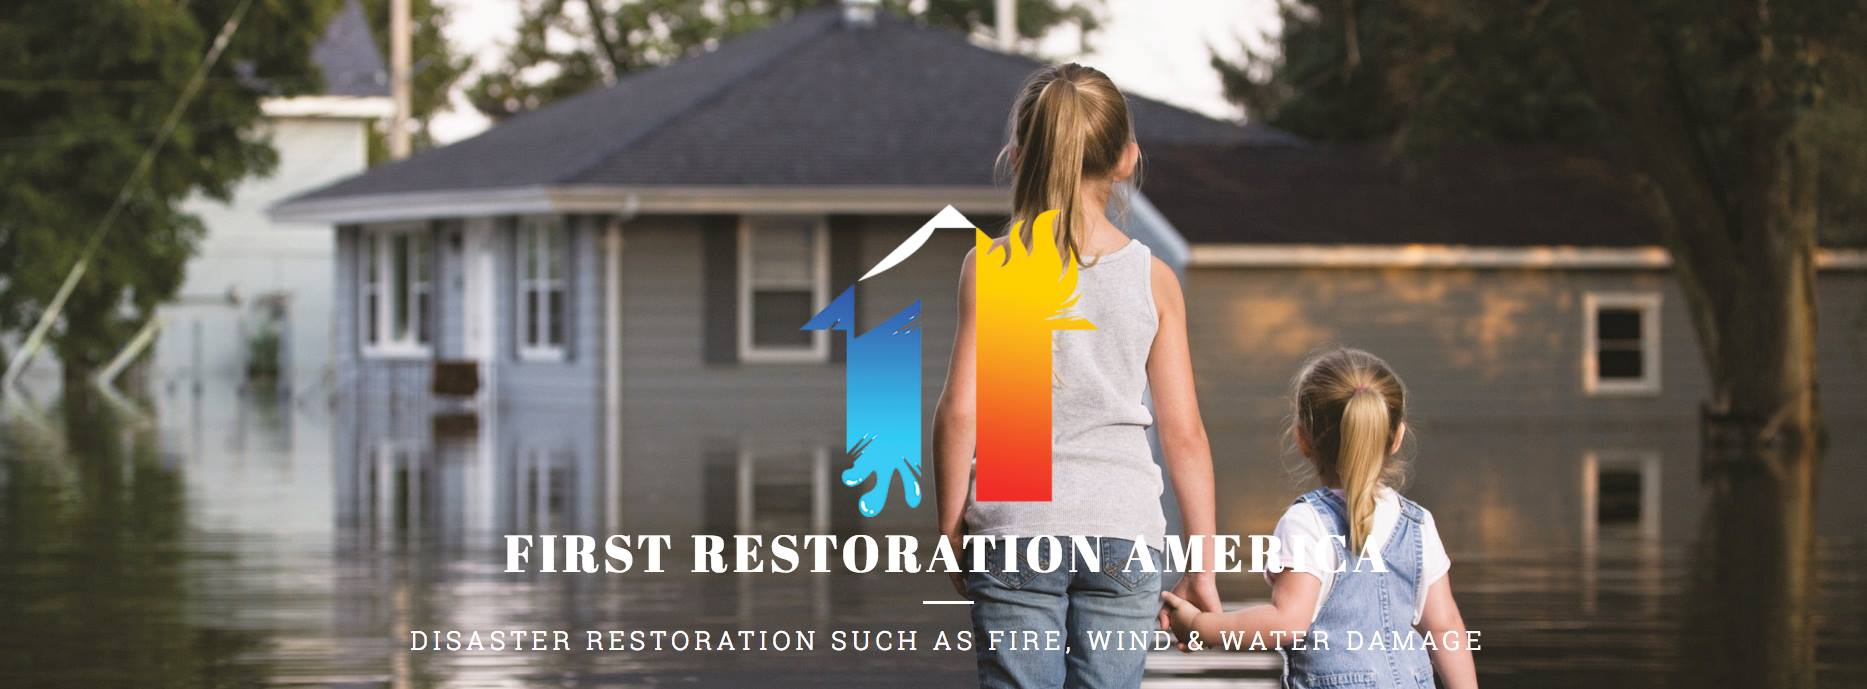 First Restoration America reviews | Disaster Restoration Services at 13850 Ballantyne Corporate PL - Charlotte NC